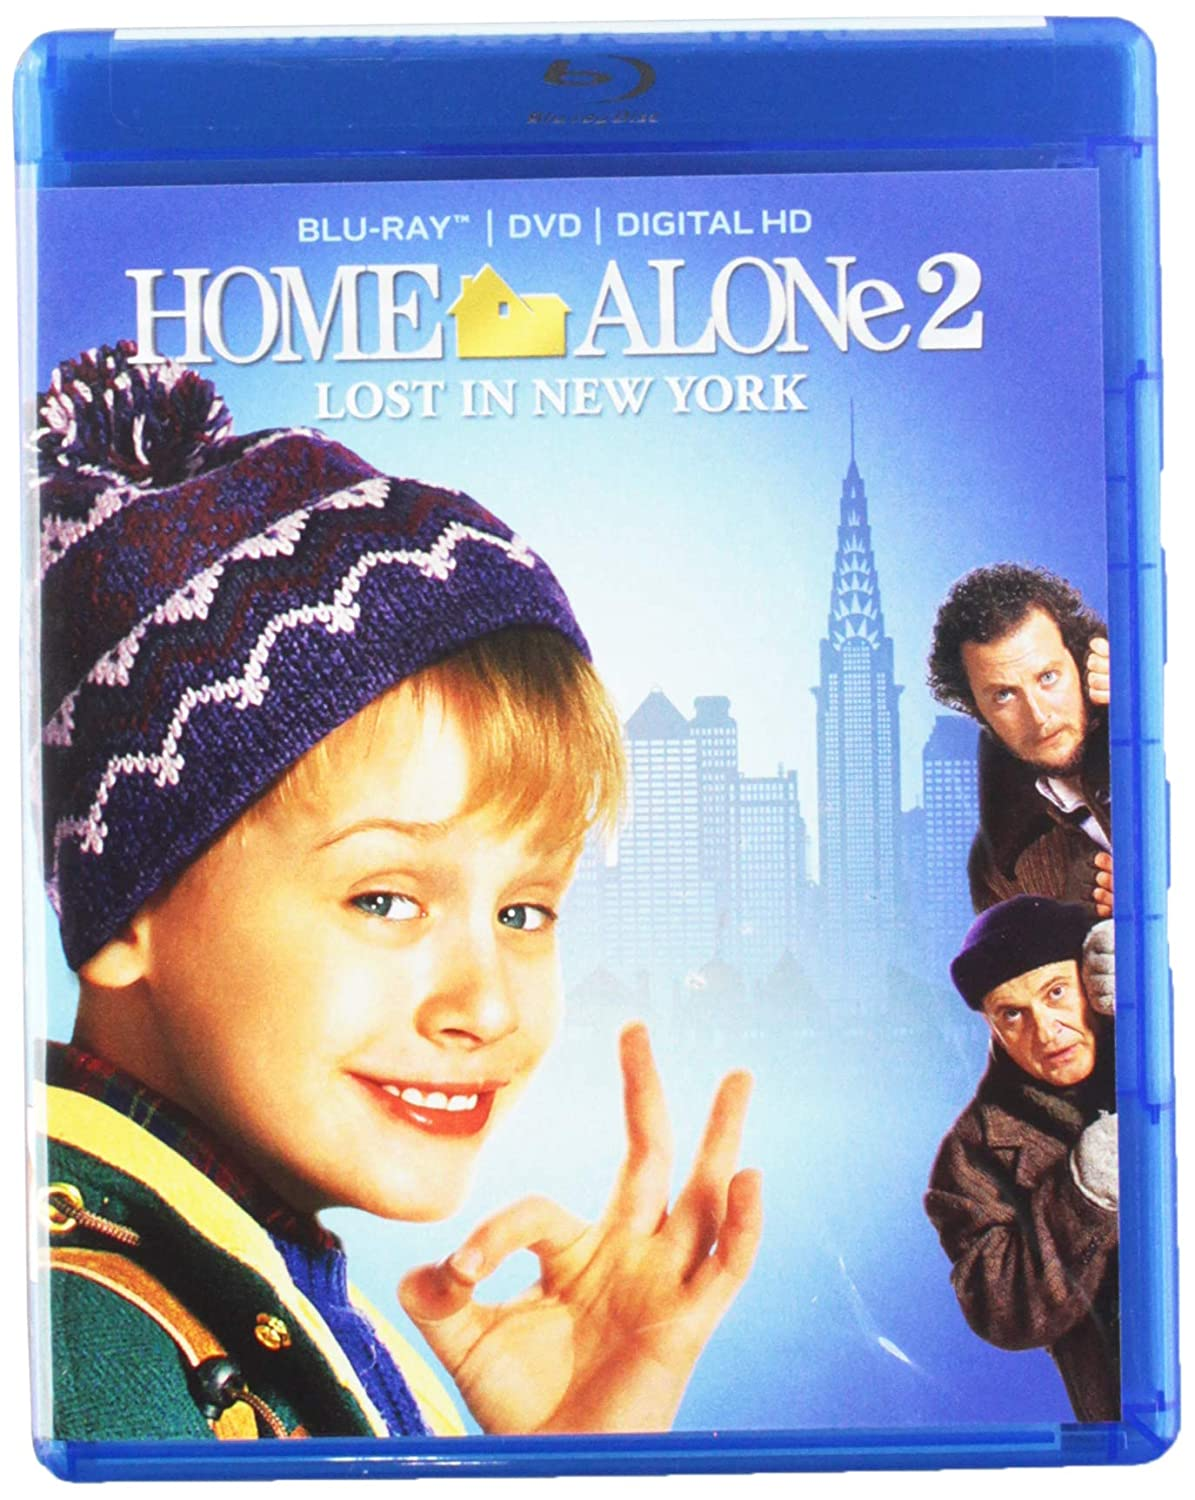 Home Alone 2: Lost in New York [Blu-ray]